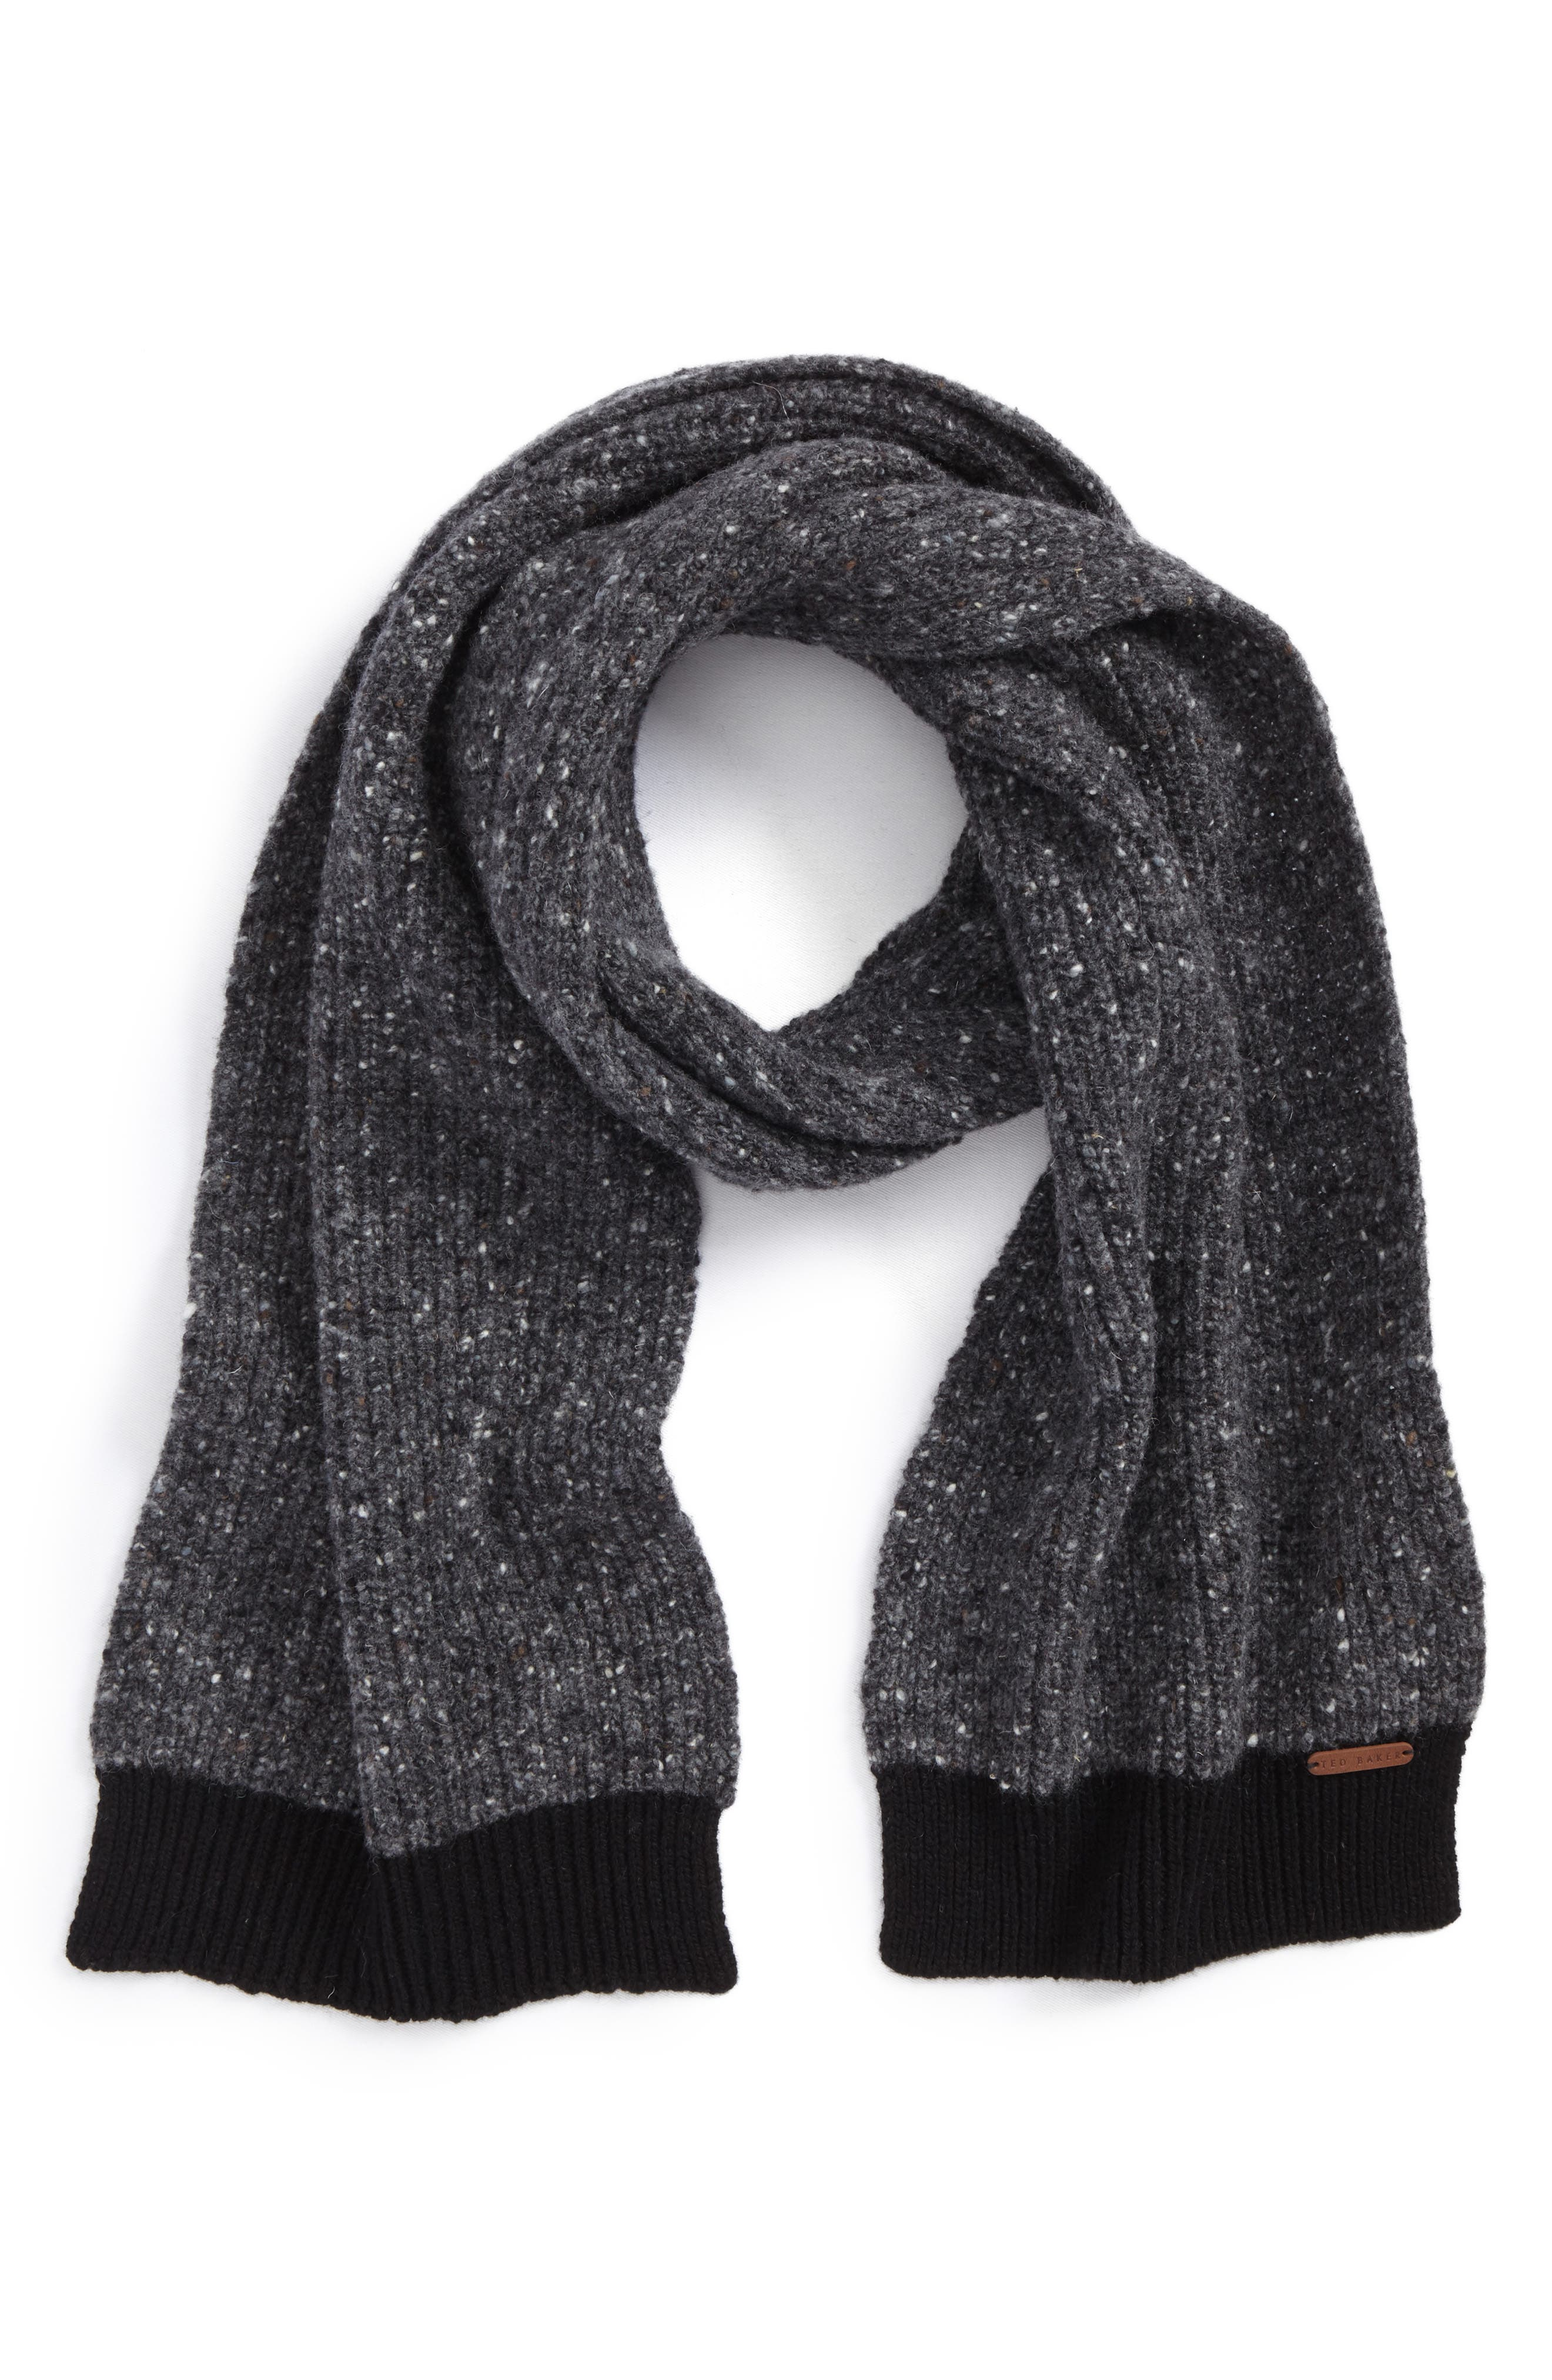 Oaks Donegal Scarf,                         Main,                         color, Charcoal